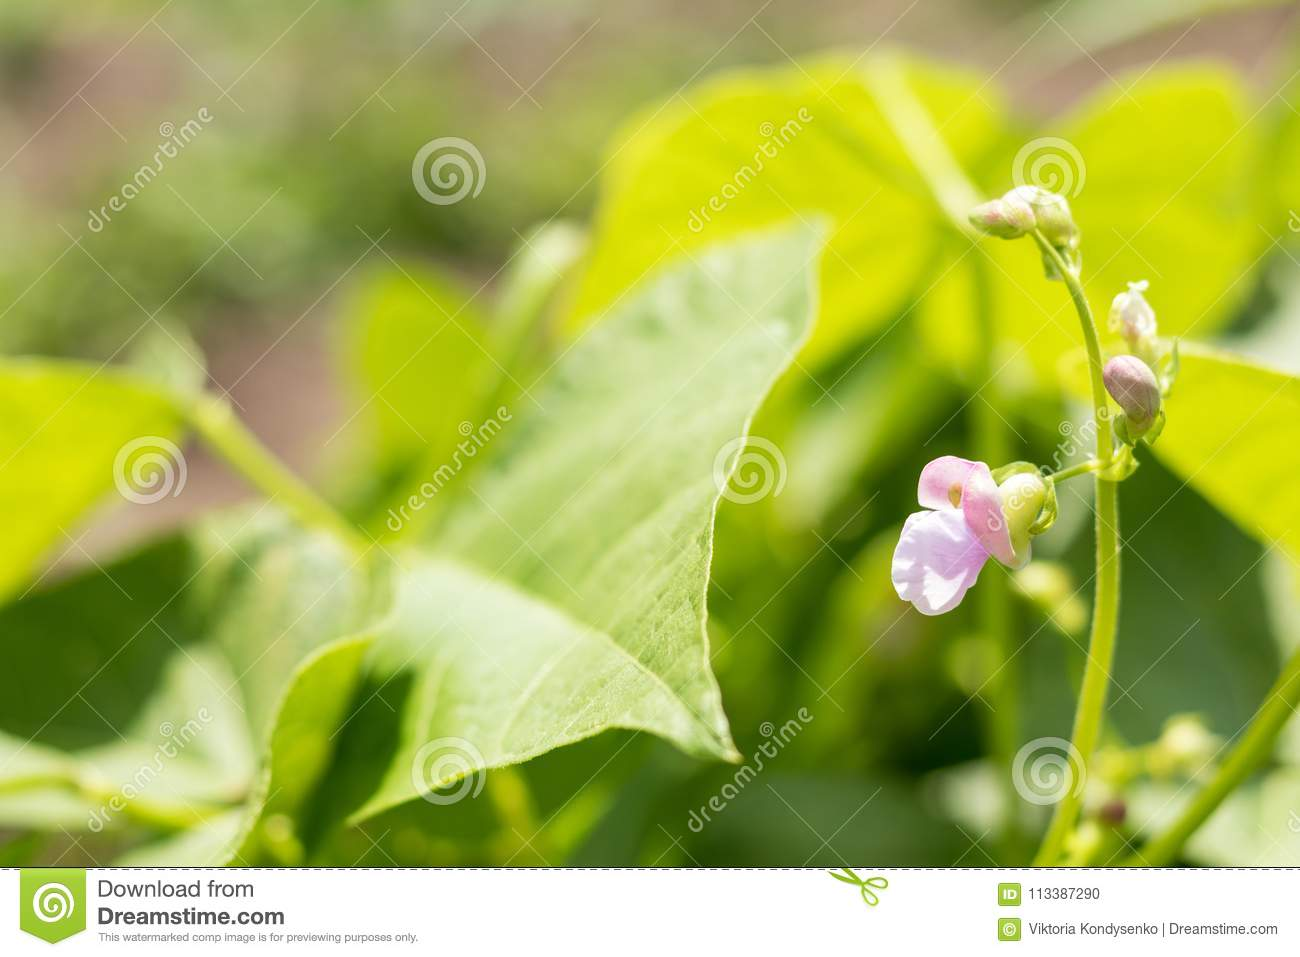 Beans plants and flowers as very nice natural background